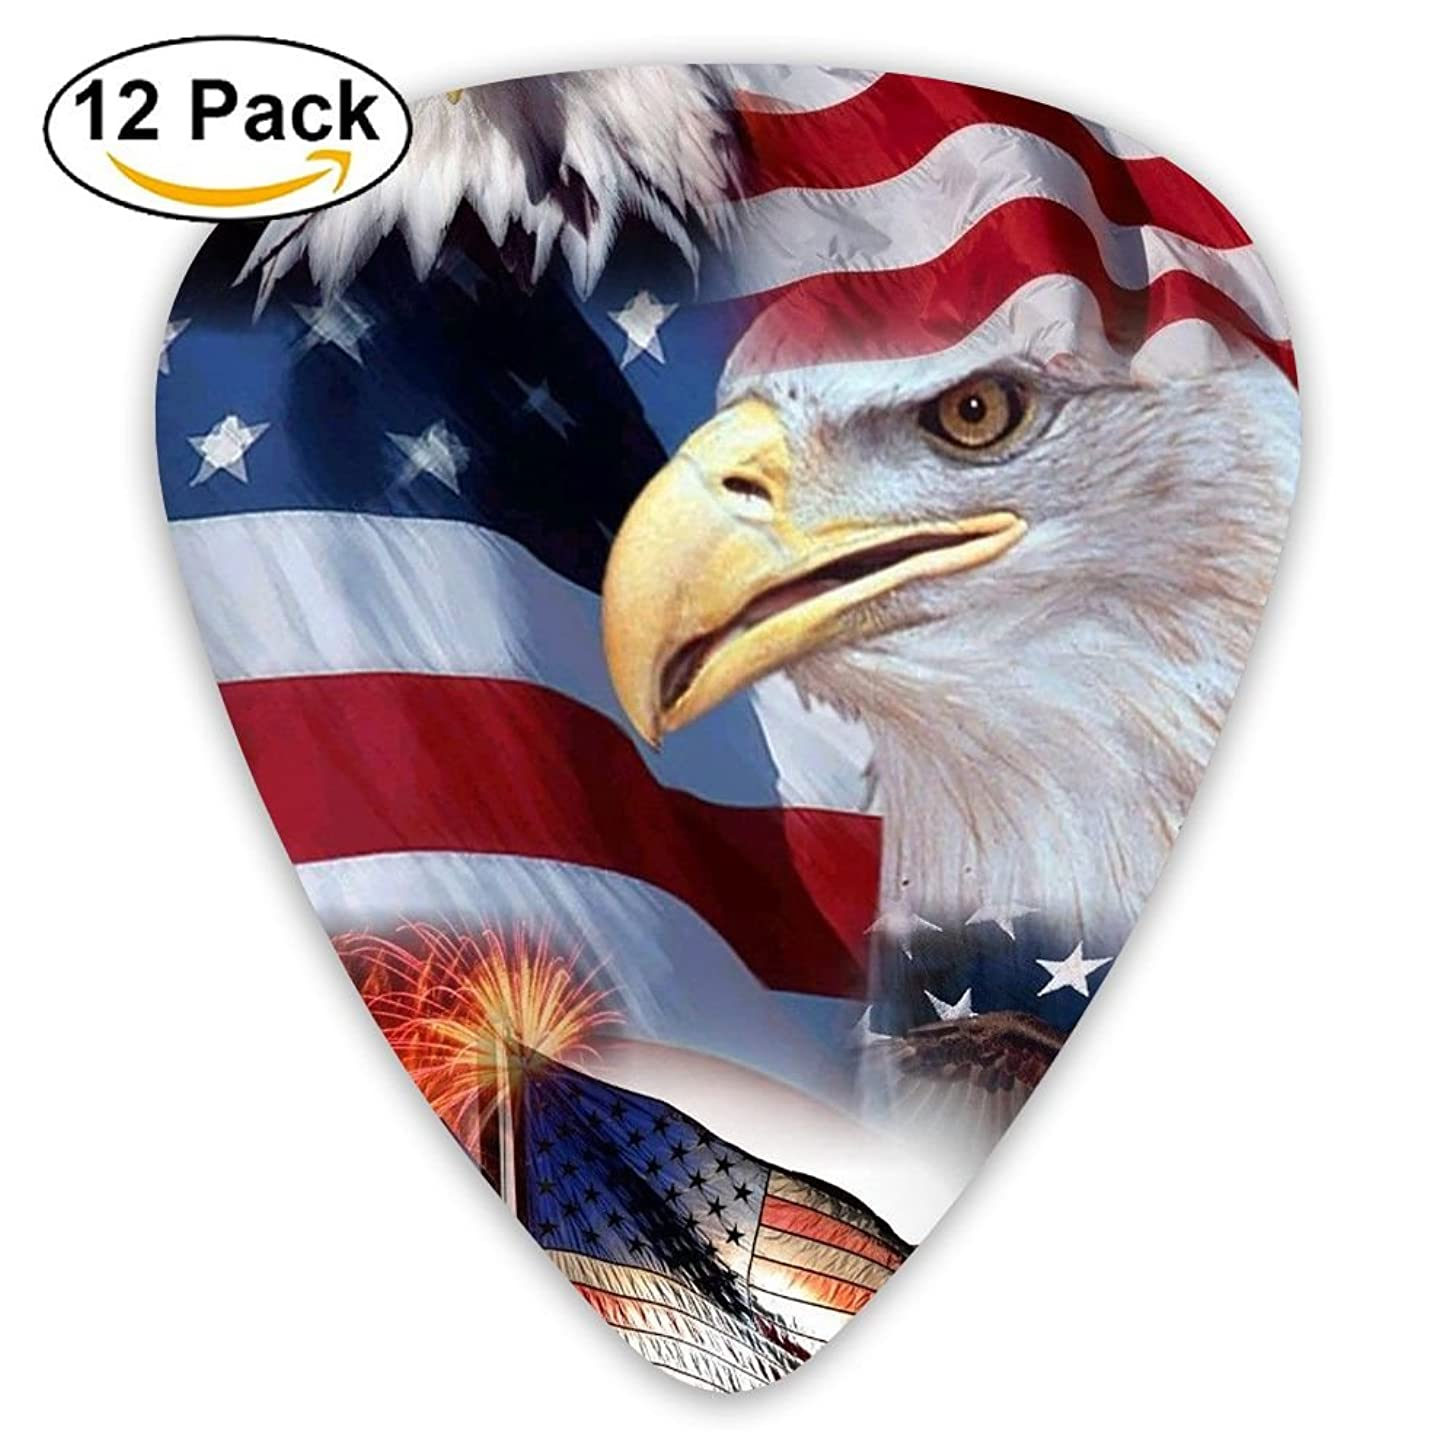 12-pack Fashion Classic Electric Guitar Picks Plectrums American Flag Design Instrument Standard Bass Guitarist